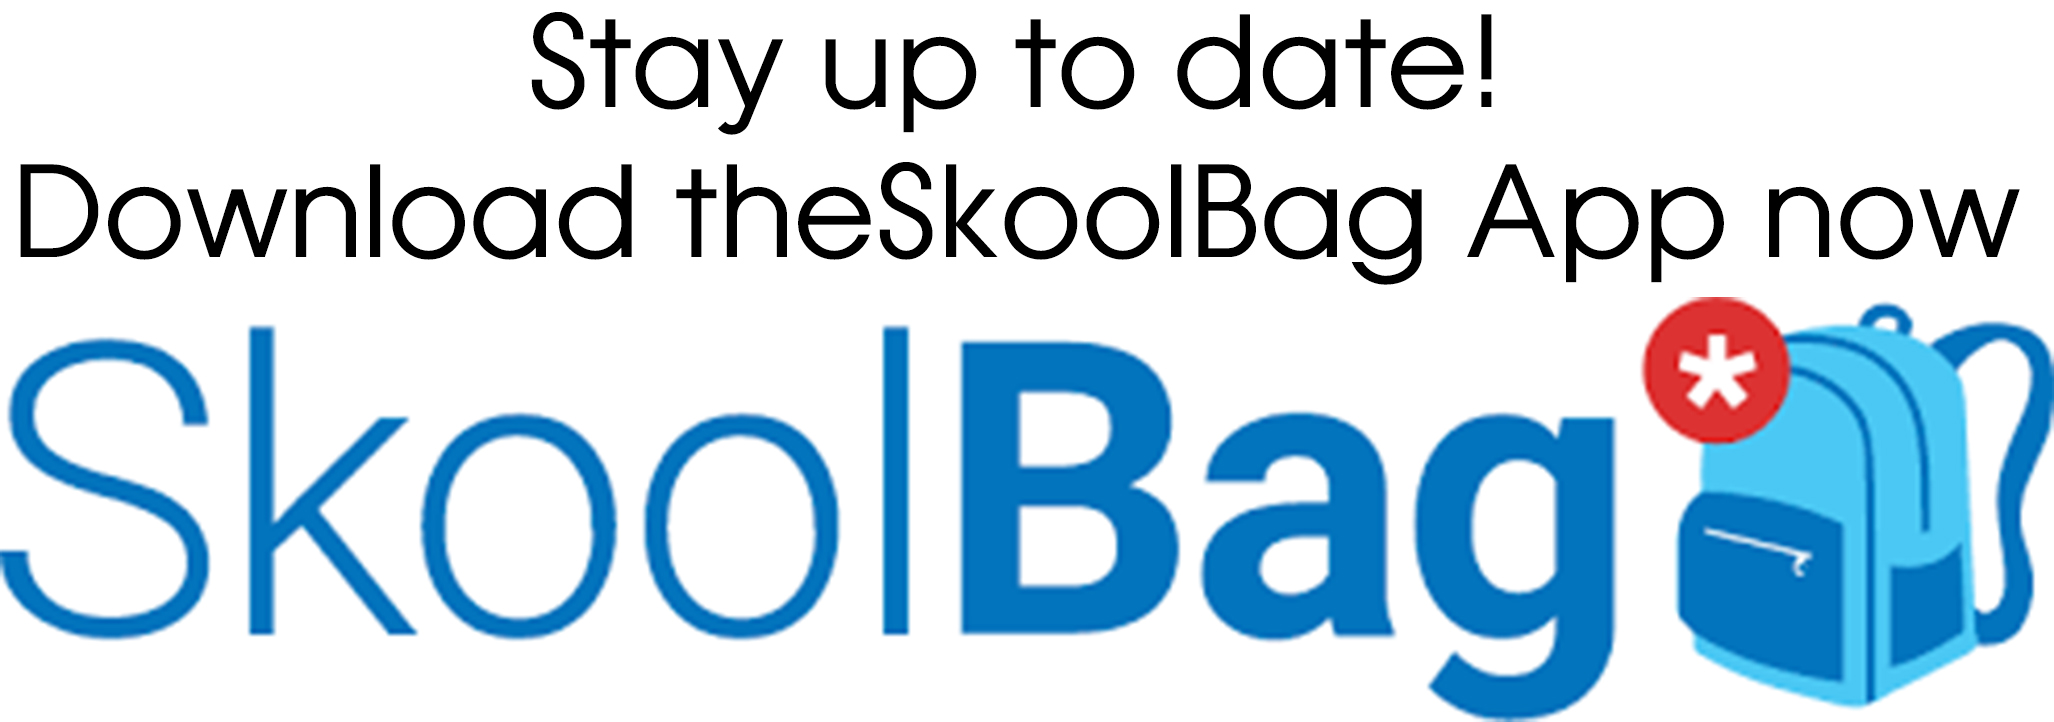 An image of the Skoolbag app logo with the words